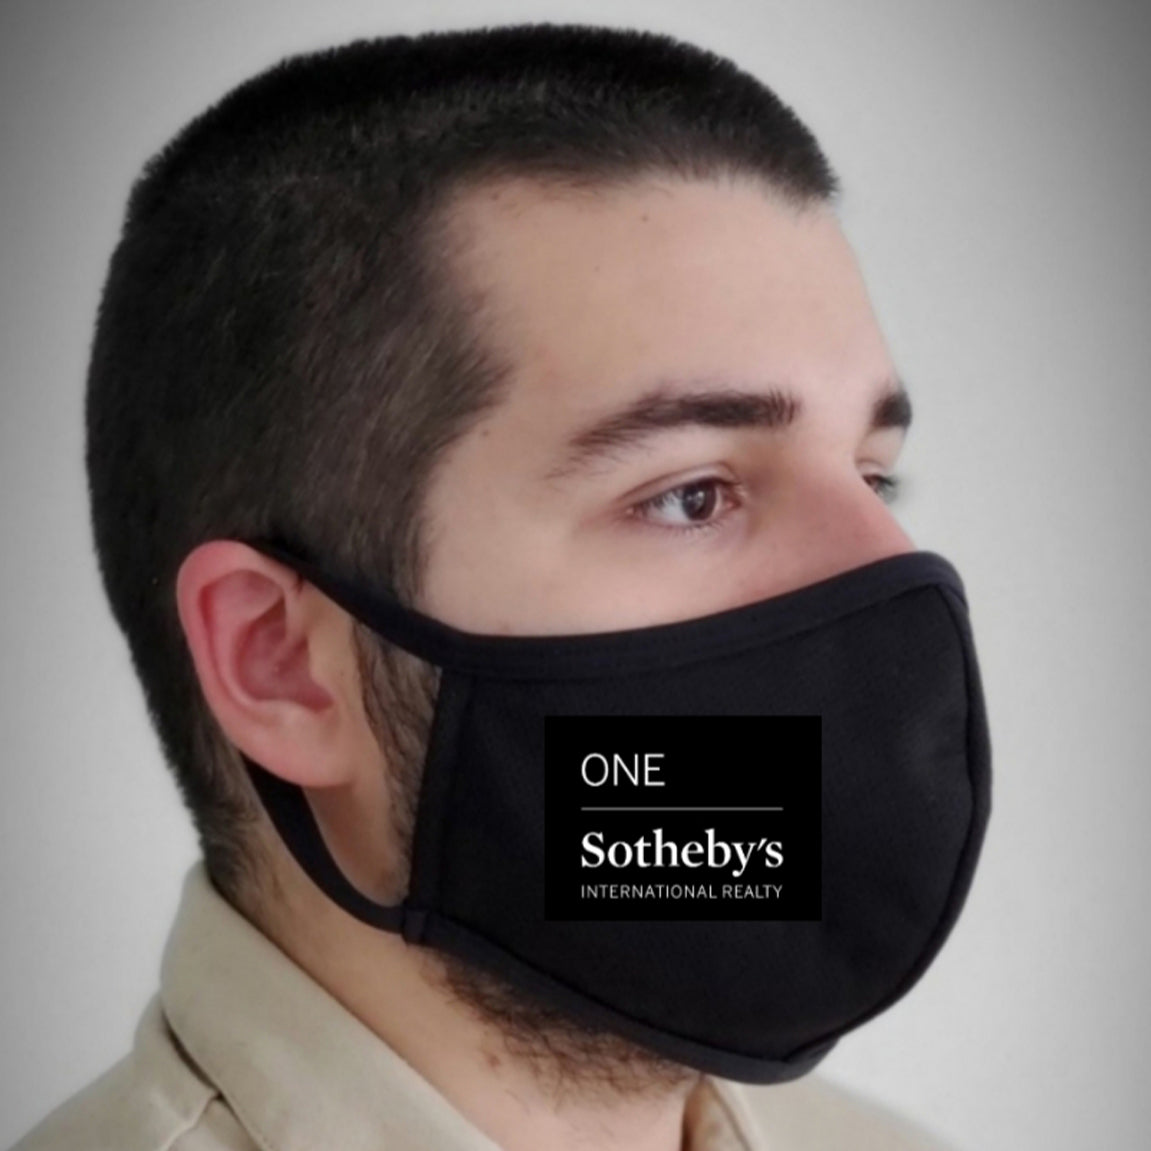 Custom Mask - One Sotheby's